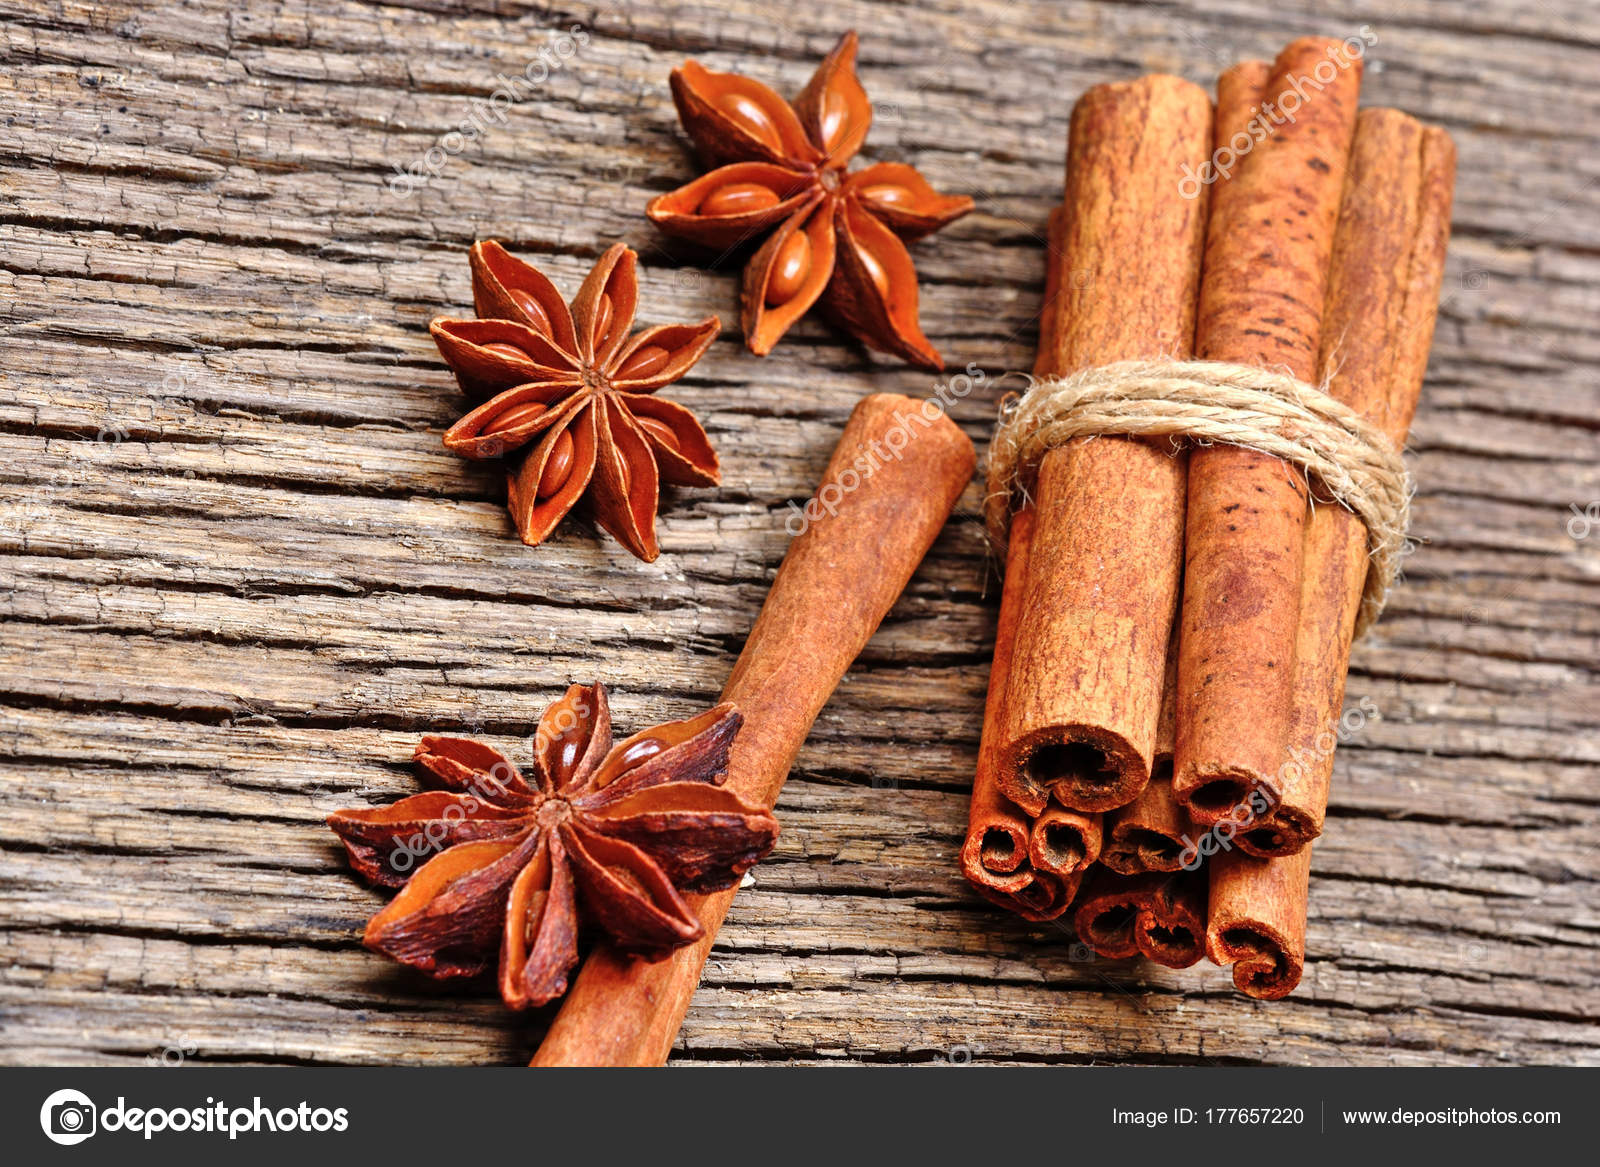 Anise Star With Cinnamon Sticks On Rustic Wooden Table